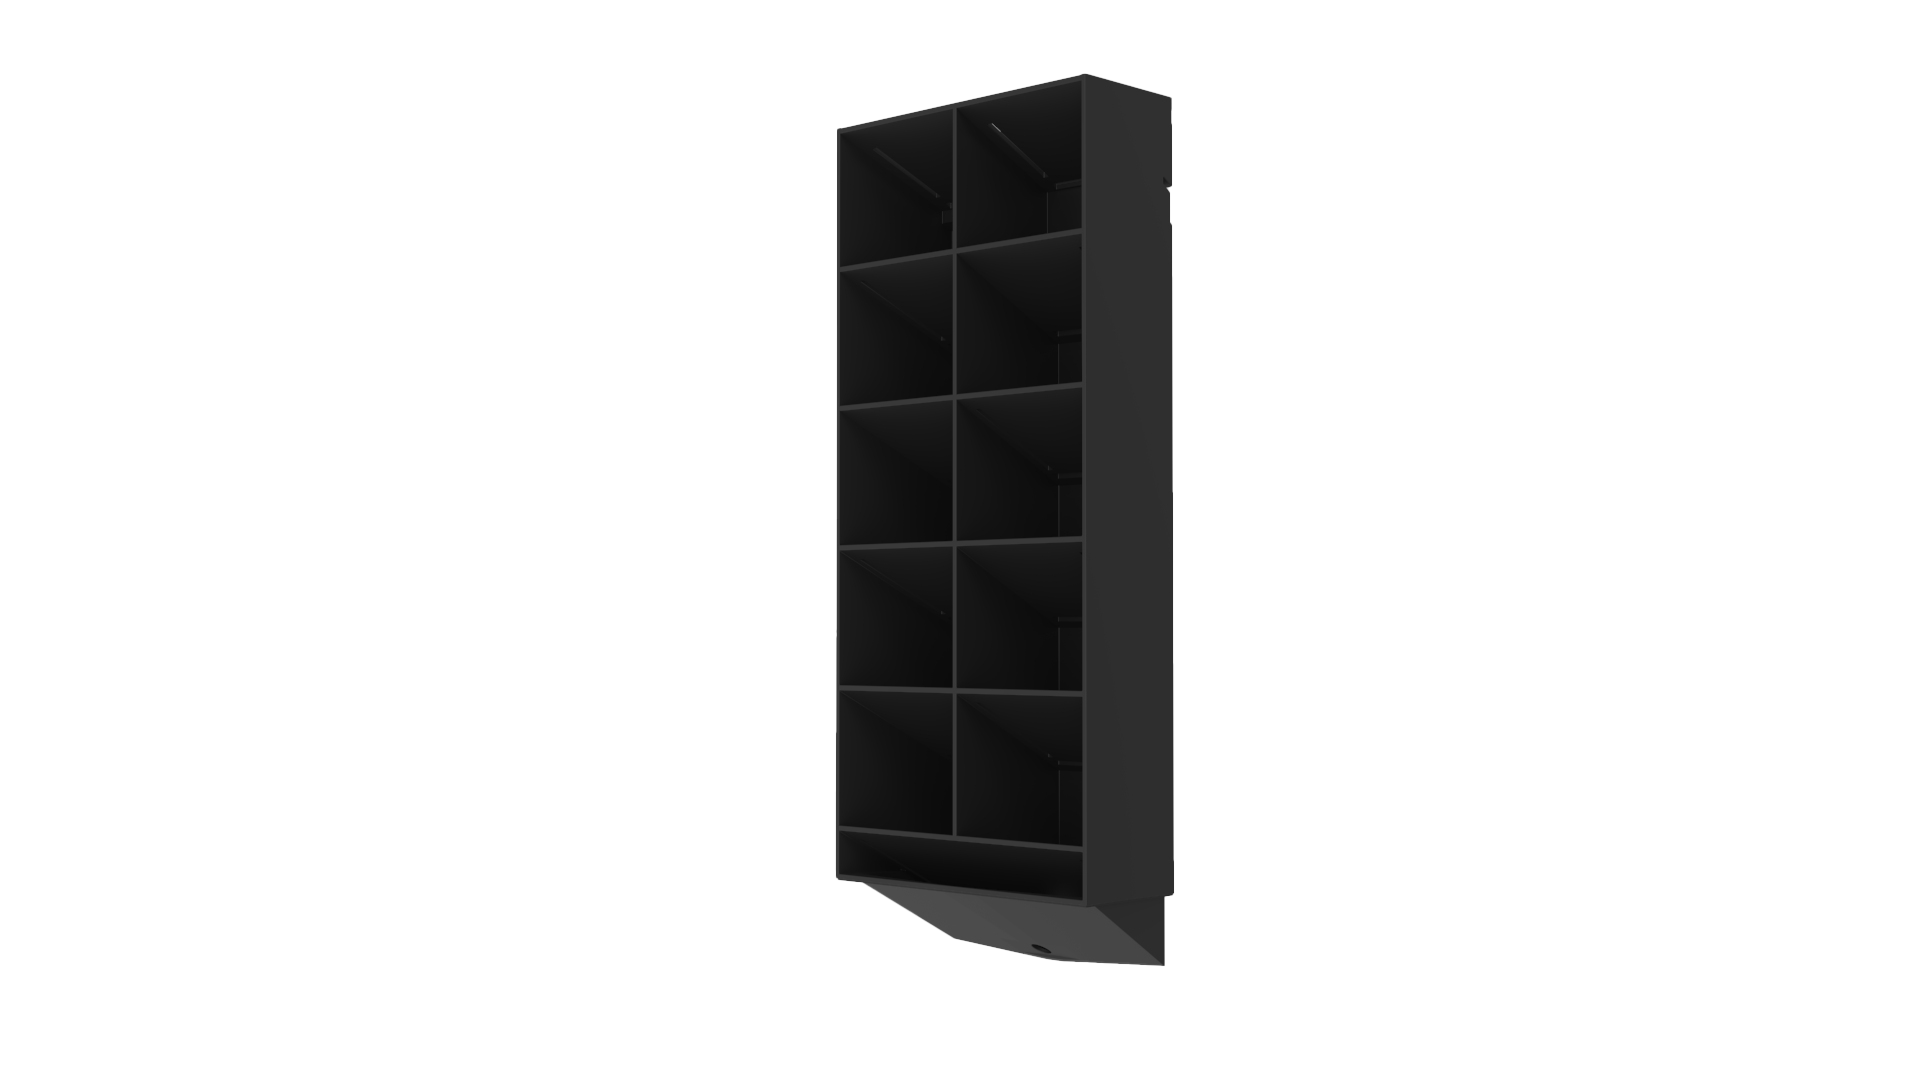 Plantbox_Rendering_black_01_SIDE